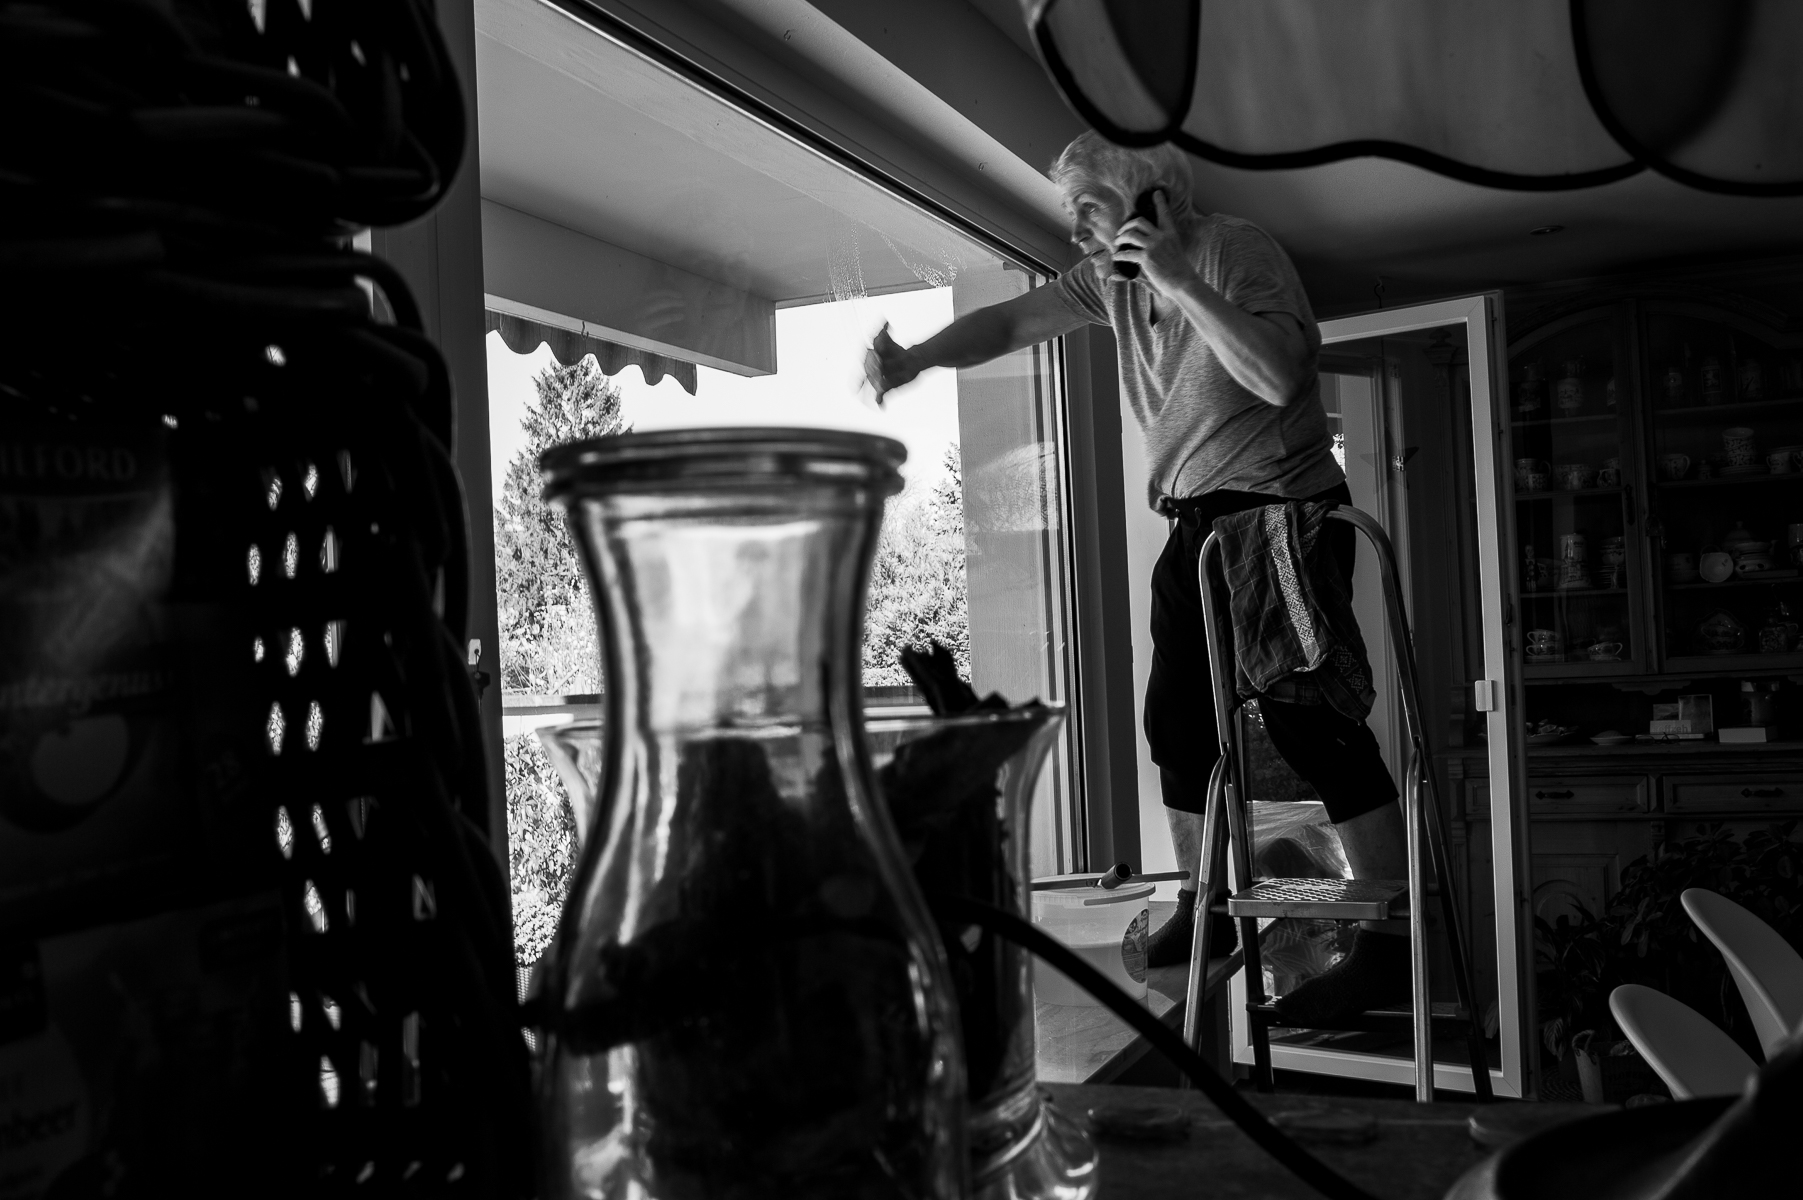 Another stay-at-home day, another phone call. Here, mom talks to Ann-Kristin while cleaning the living room windows. Oberhausen, Germany, March 25, 2020